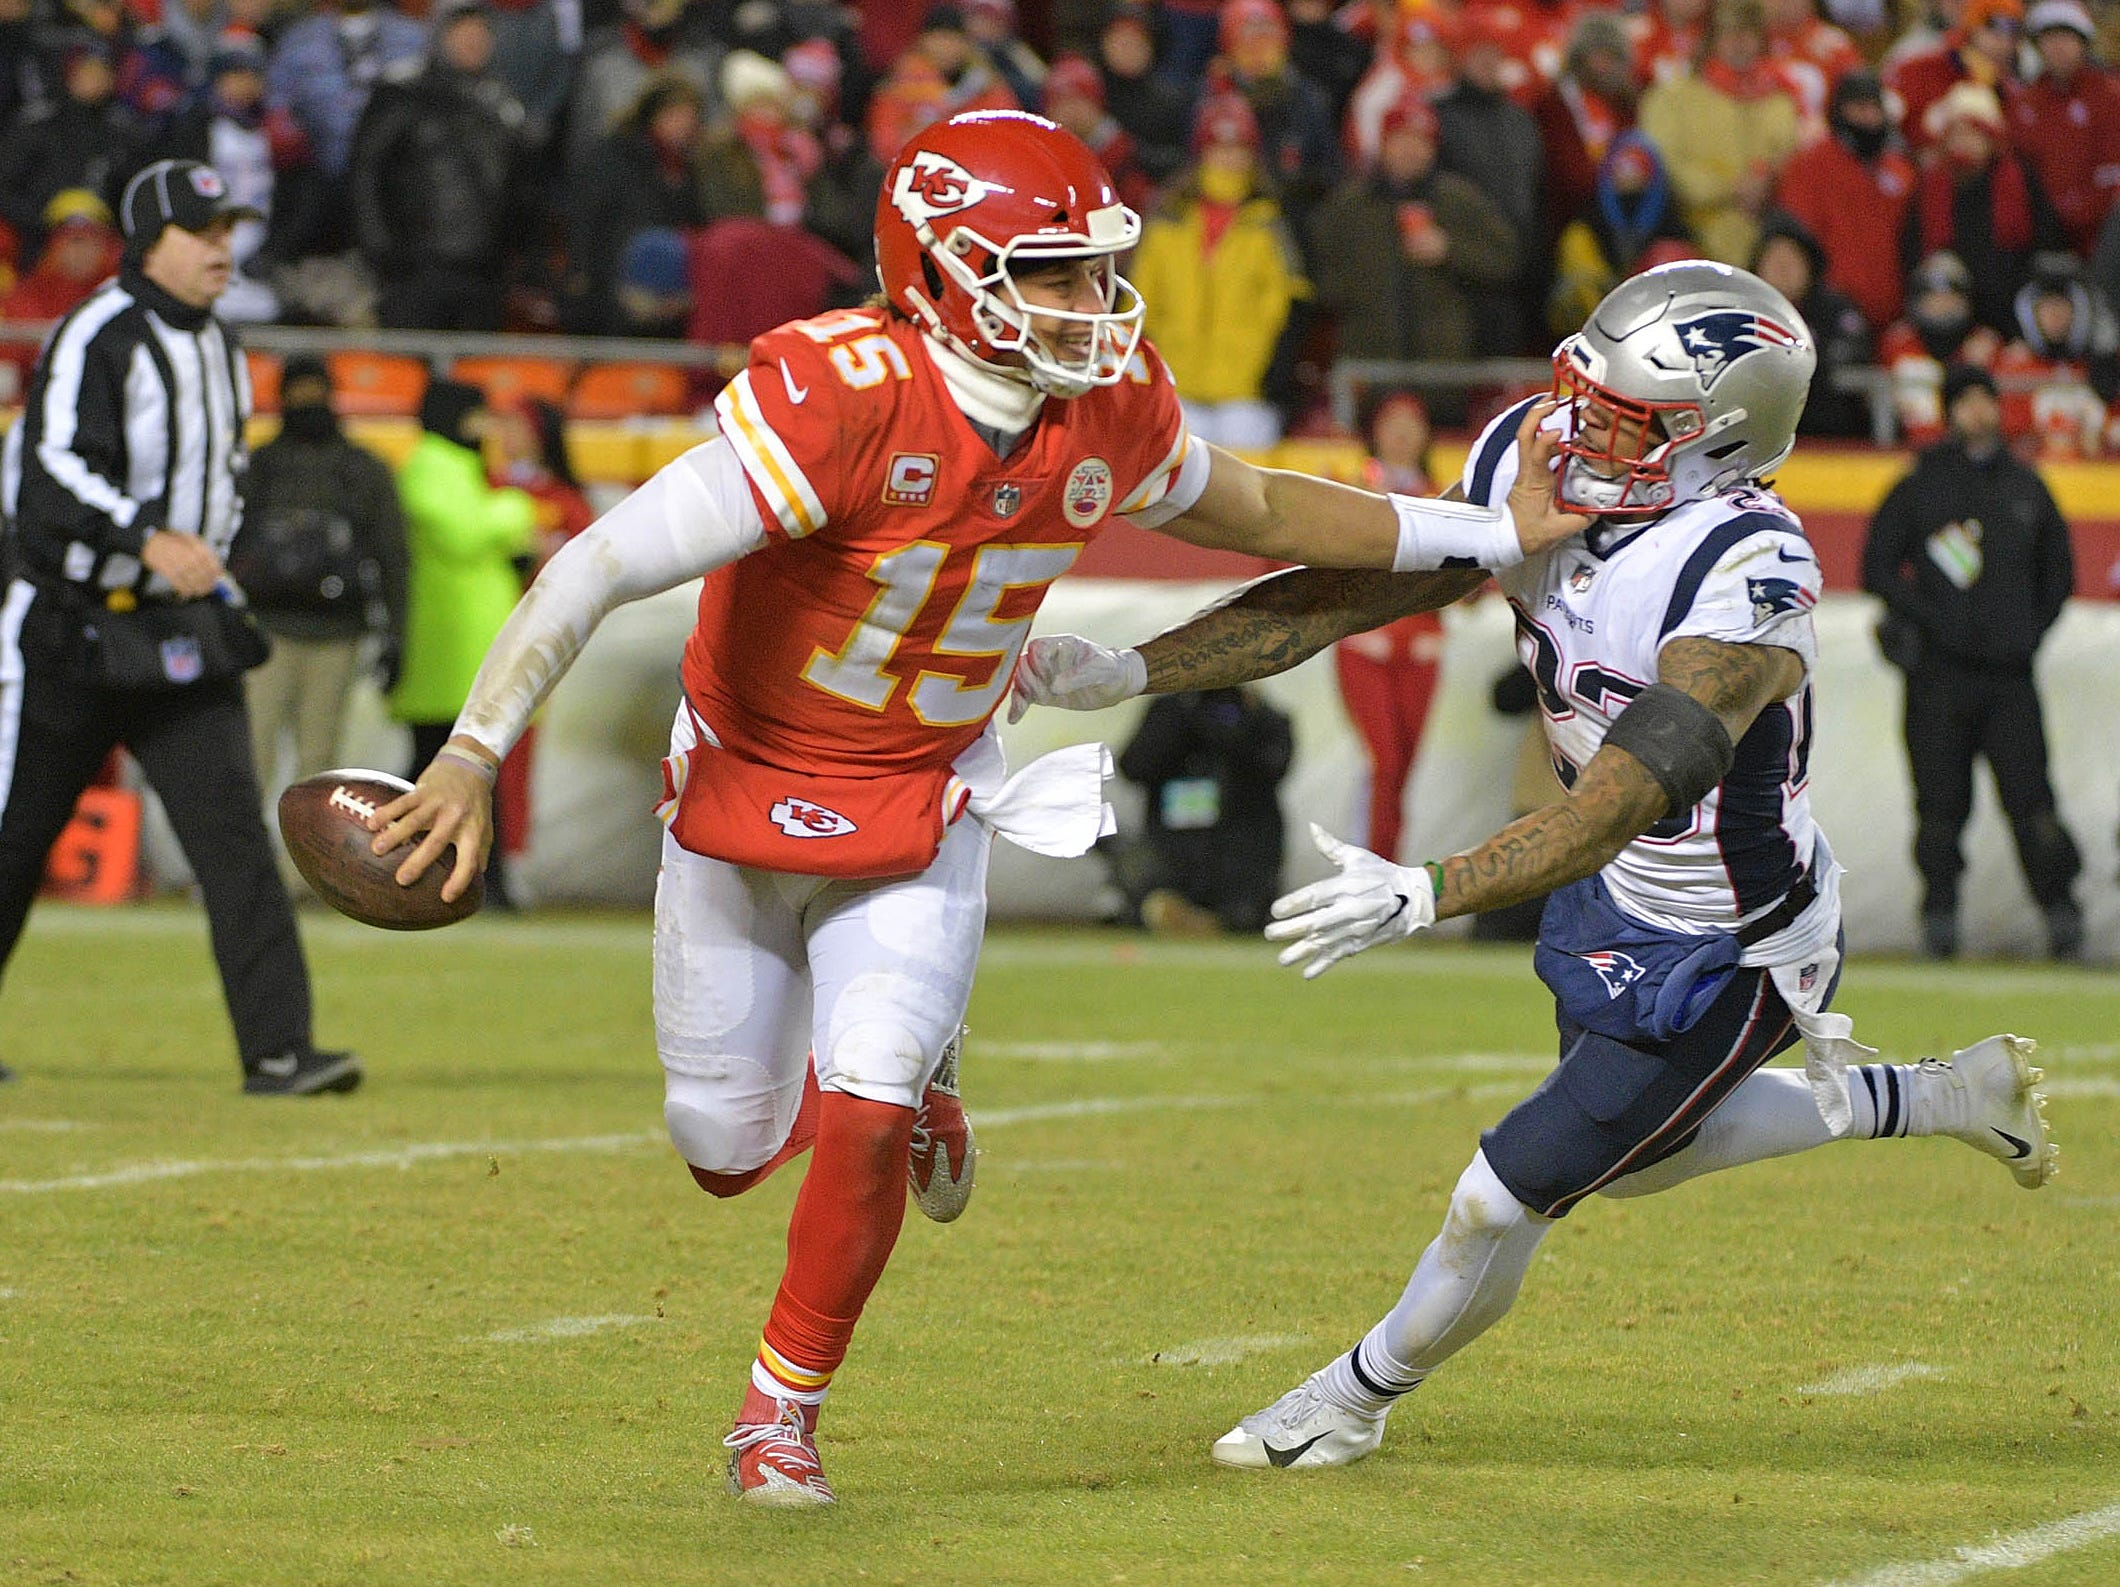 Kansas City Chiefs quarterback Patrick Mahomes (15) runs with the ball as New England Patriots strong safety Patrick Chung (23) defends during the second half of the AFC Championship Game at Arrowhead Stadium.